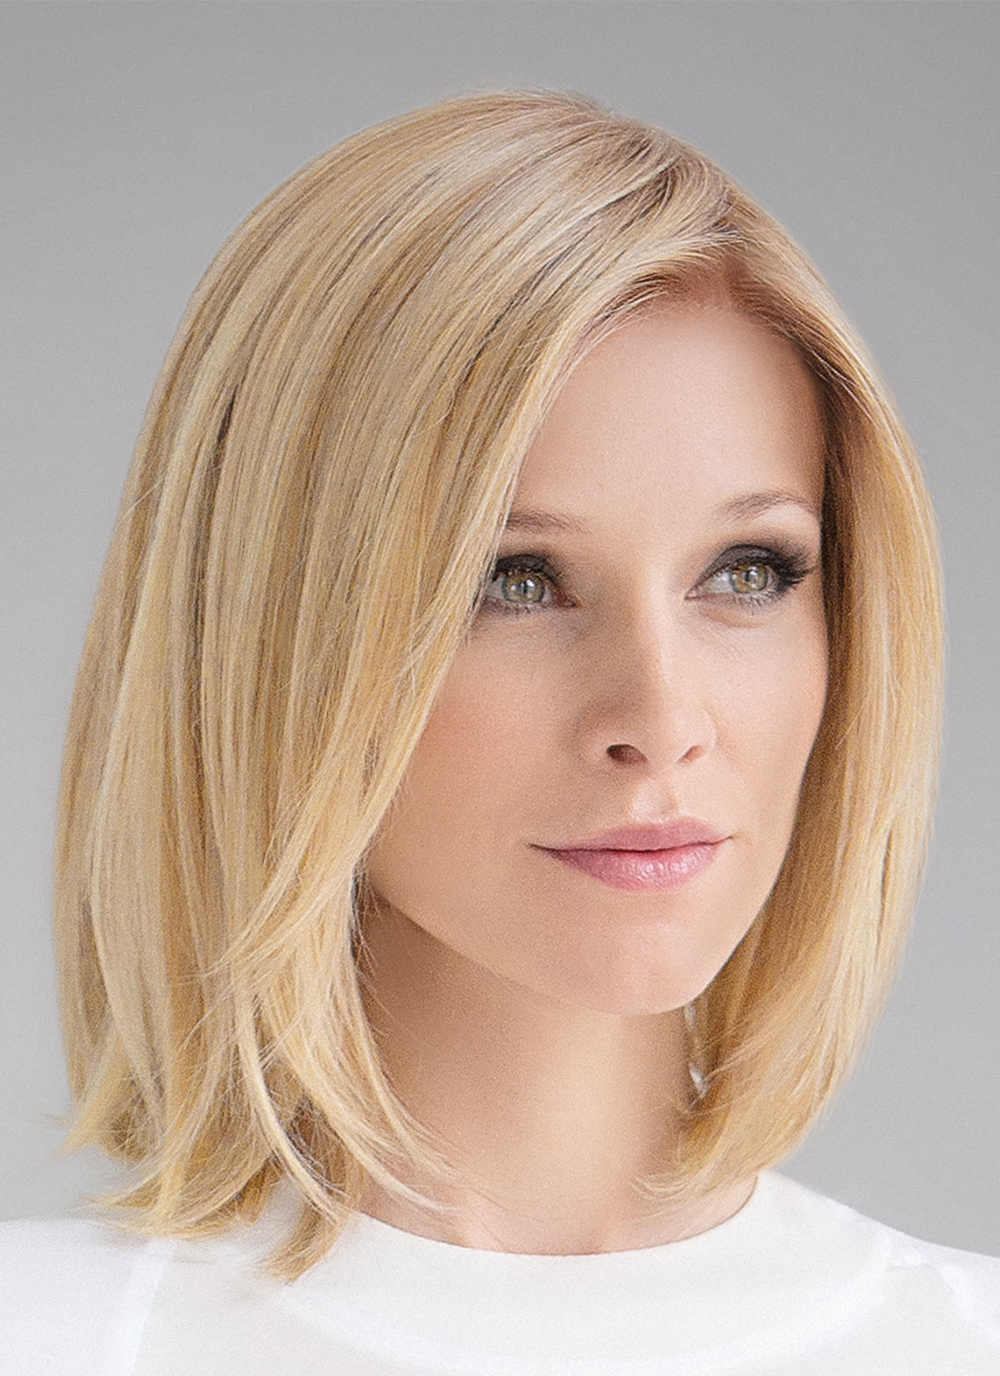 Catch by Ellen Wille   A long style bob designed with a long fringe